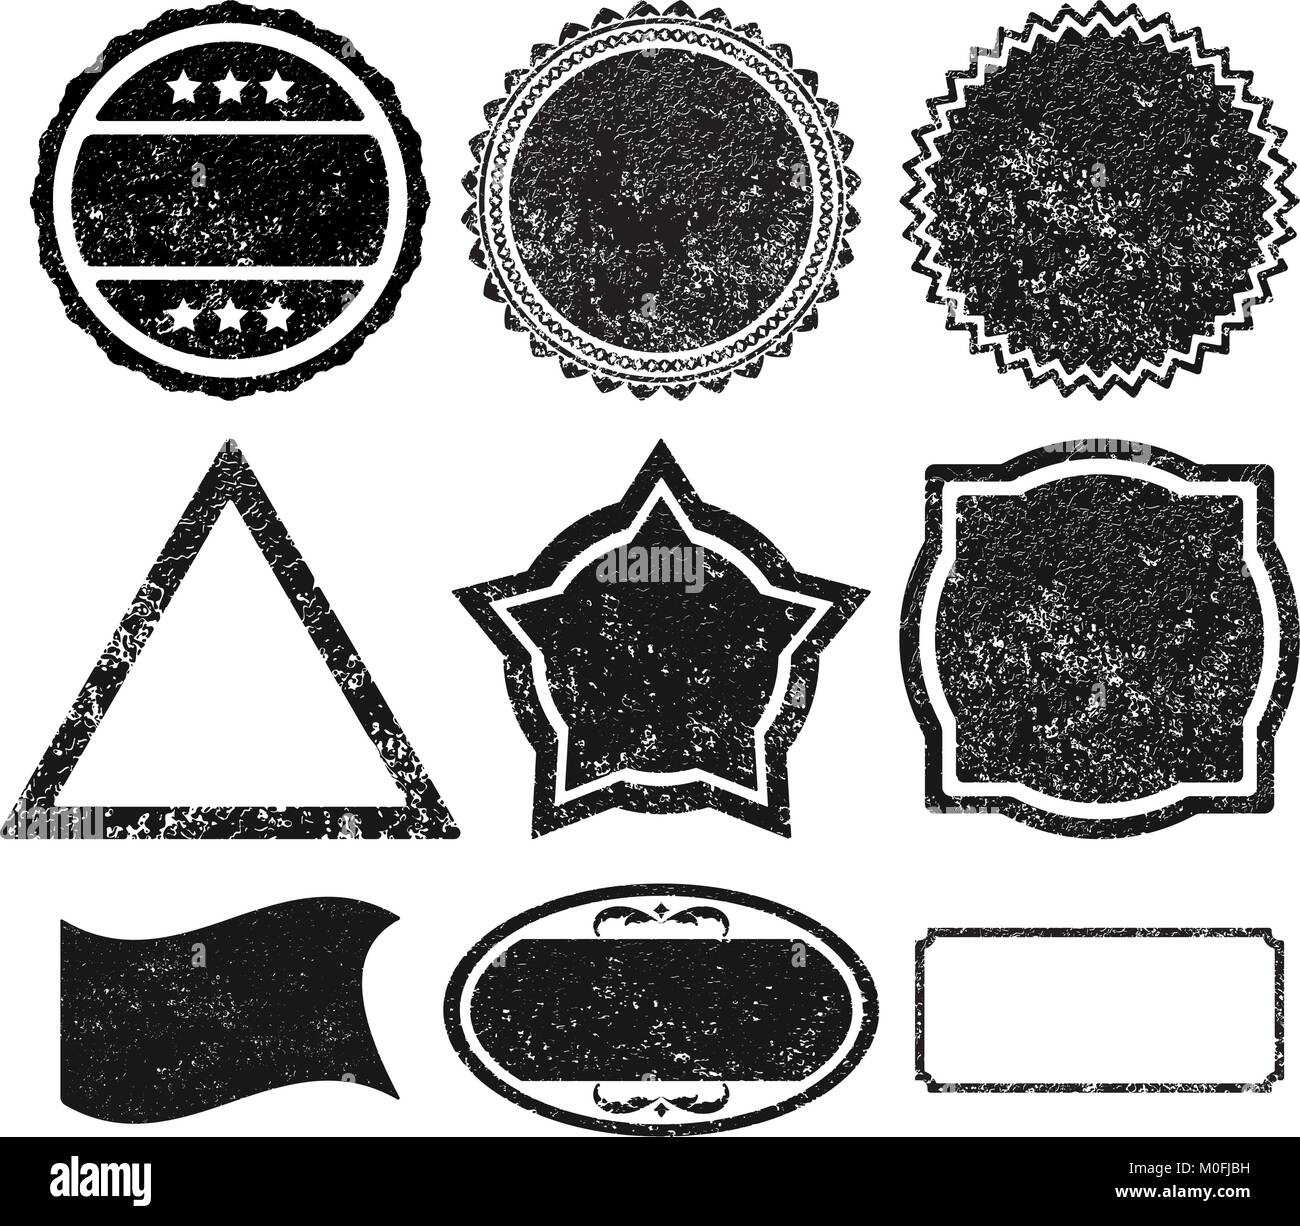 set 9 rubber stamp template stock vector art illustration vector